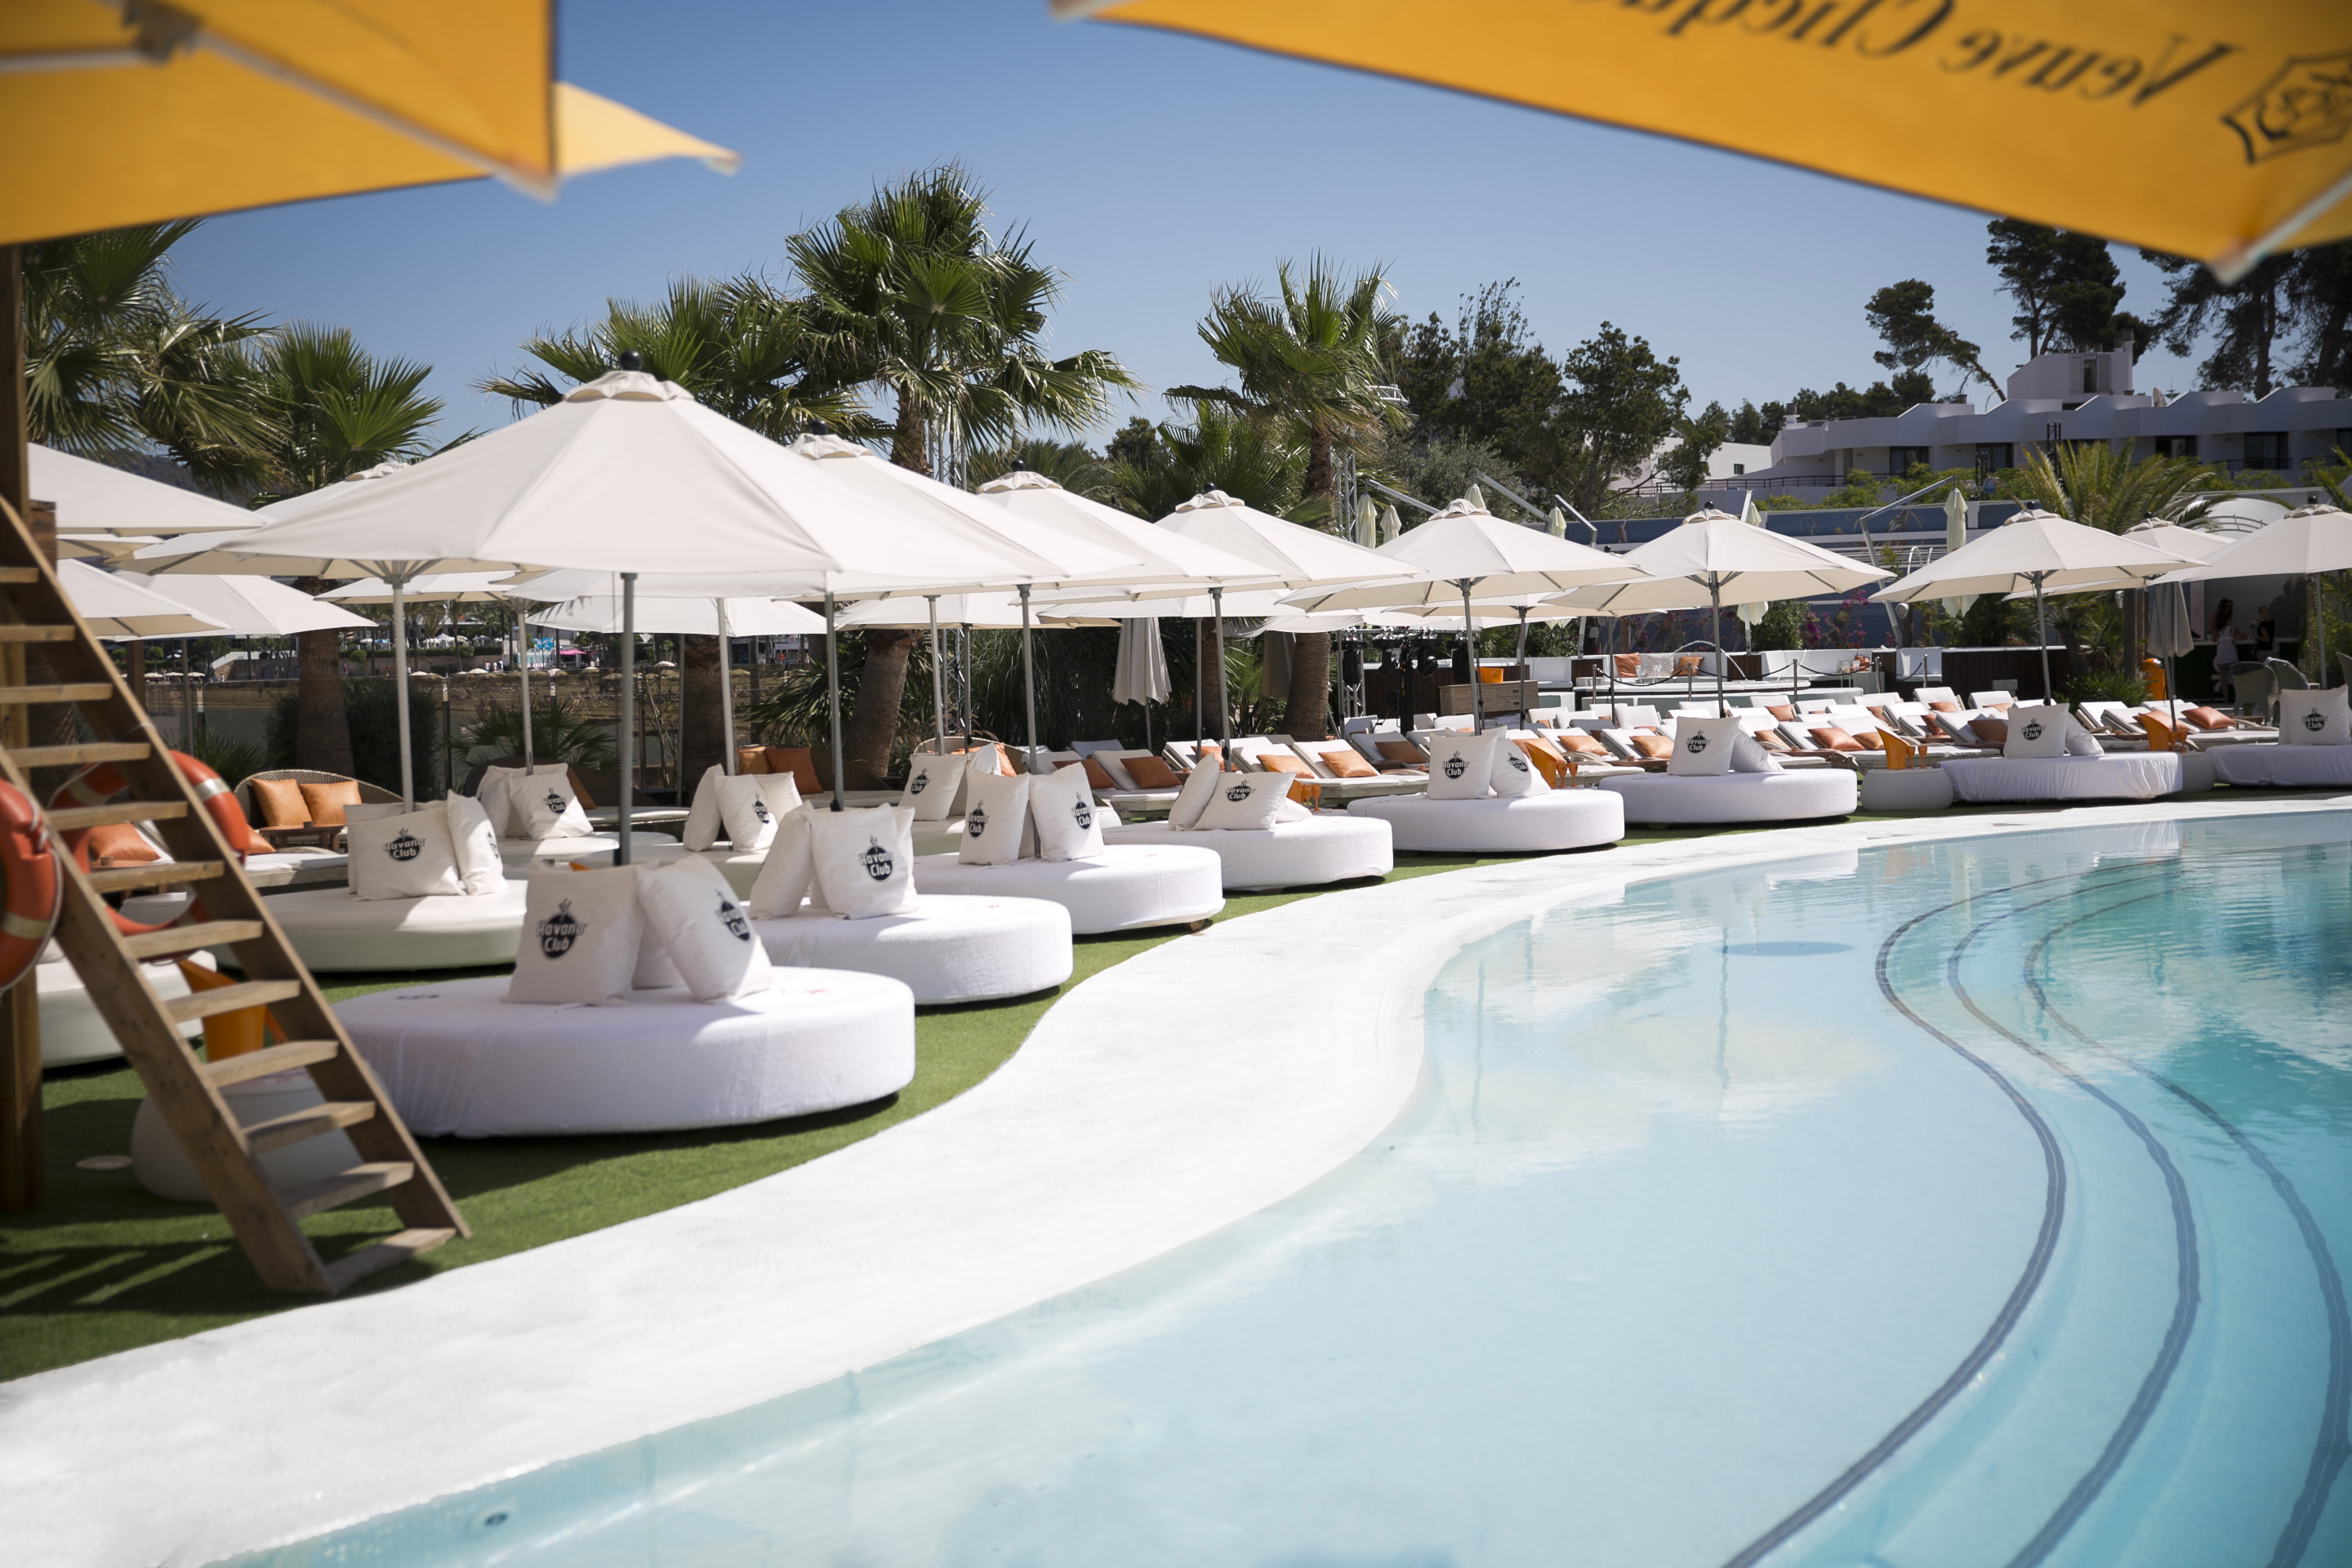 ocean beach ibiza  g lifestyle - cabana  jacuzzi table prive poolside beds